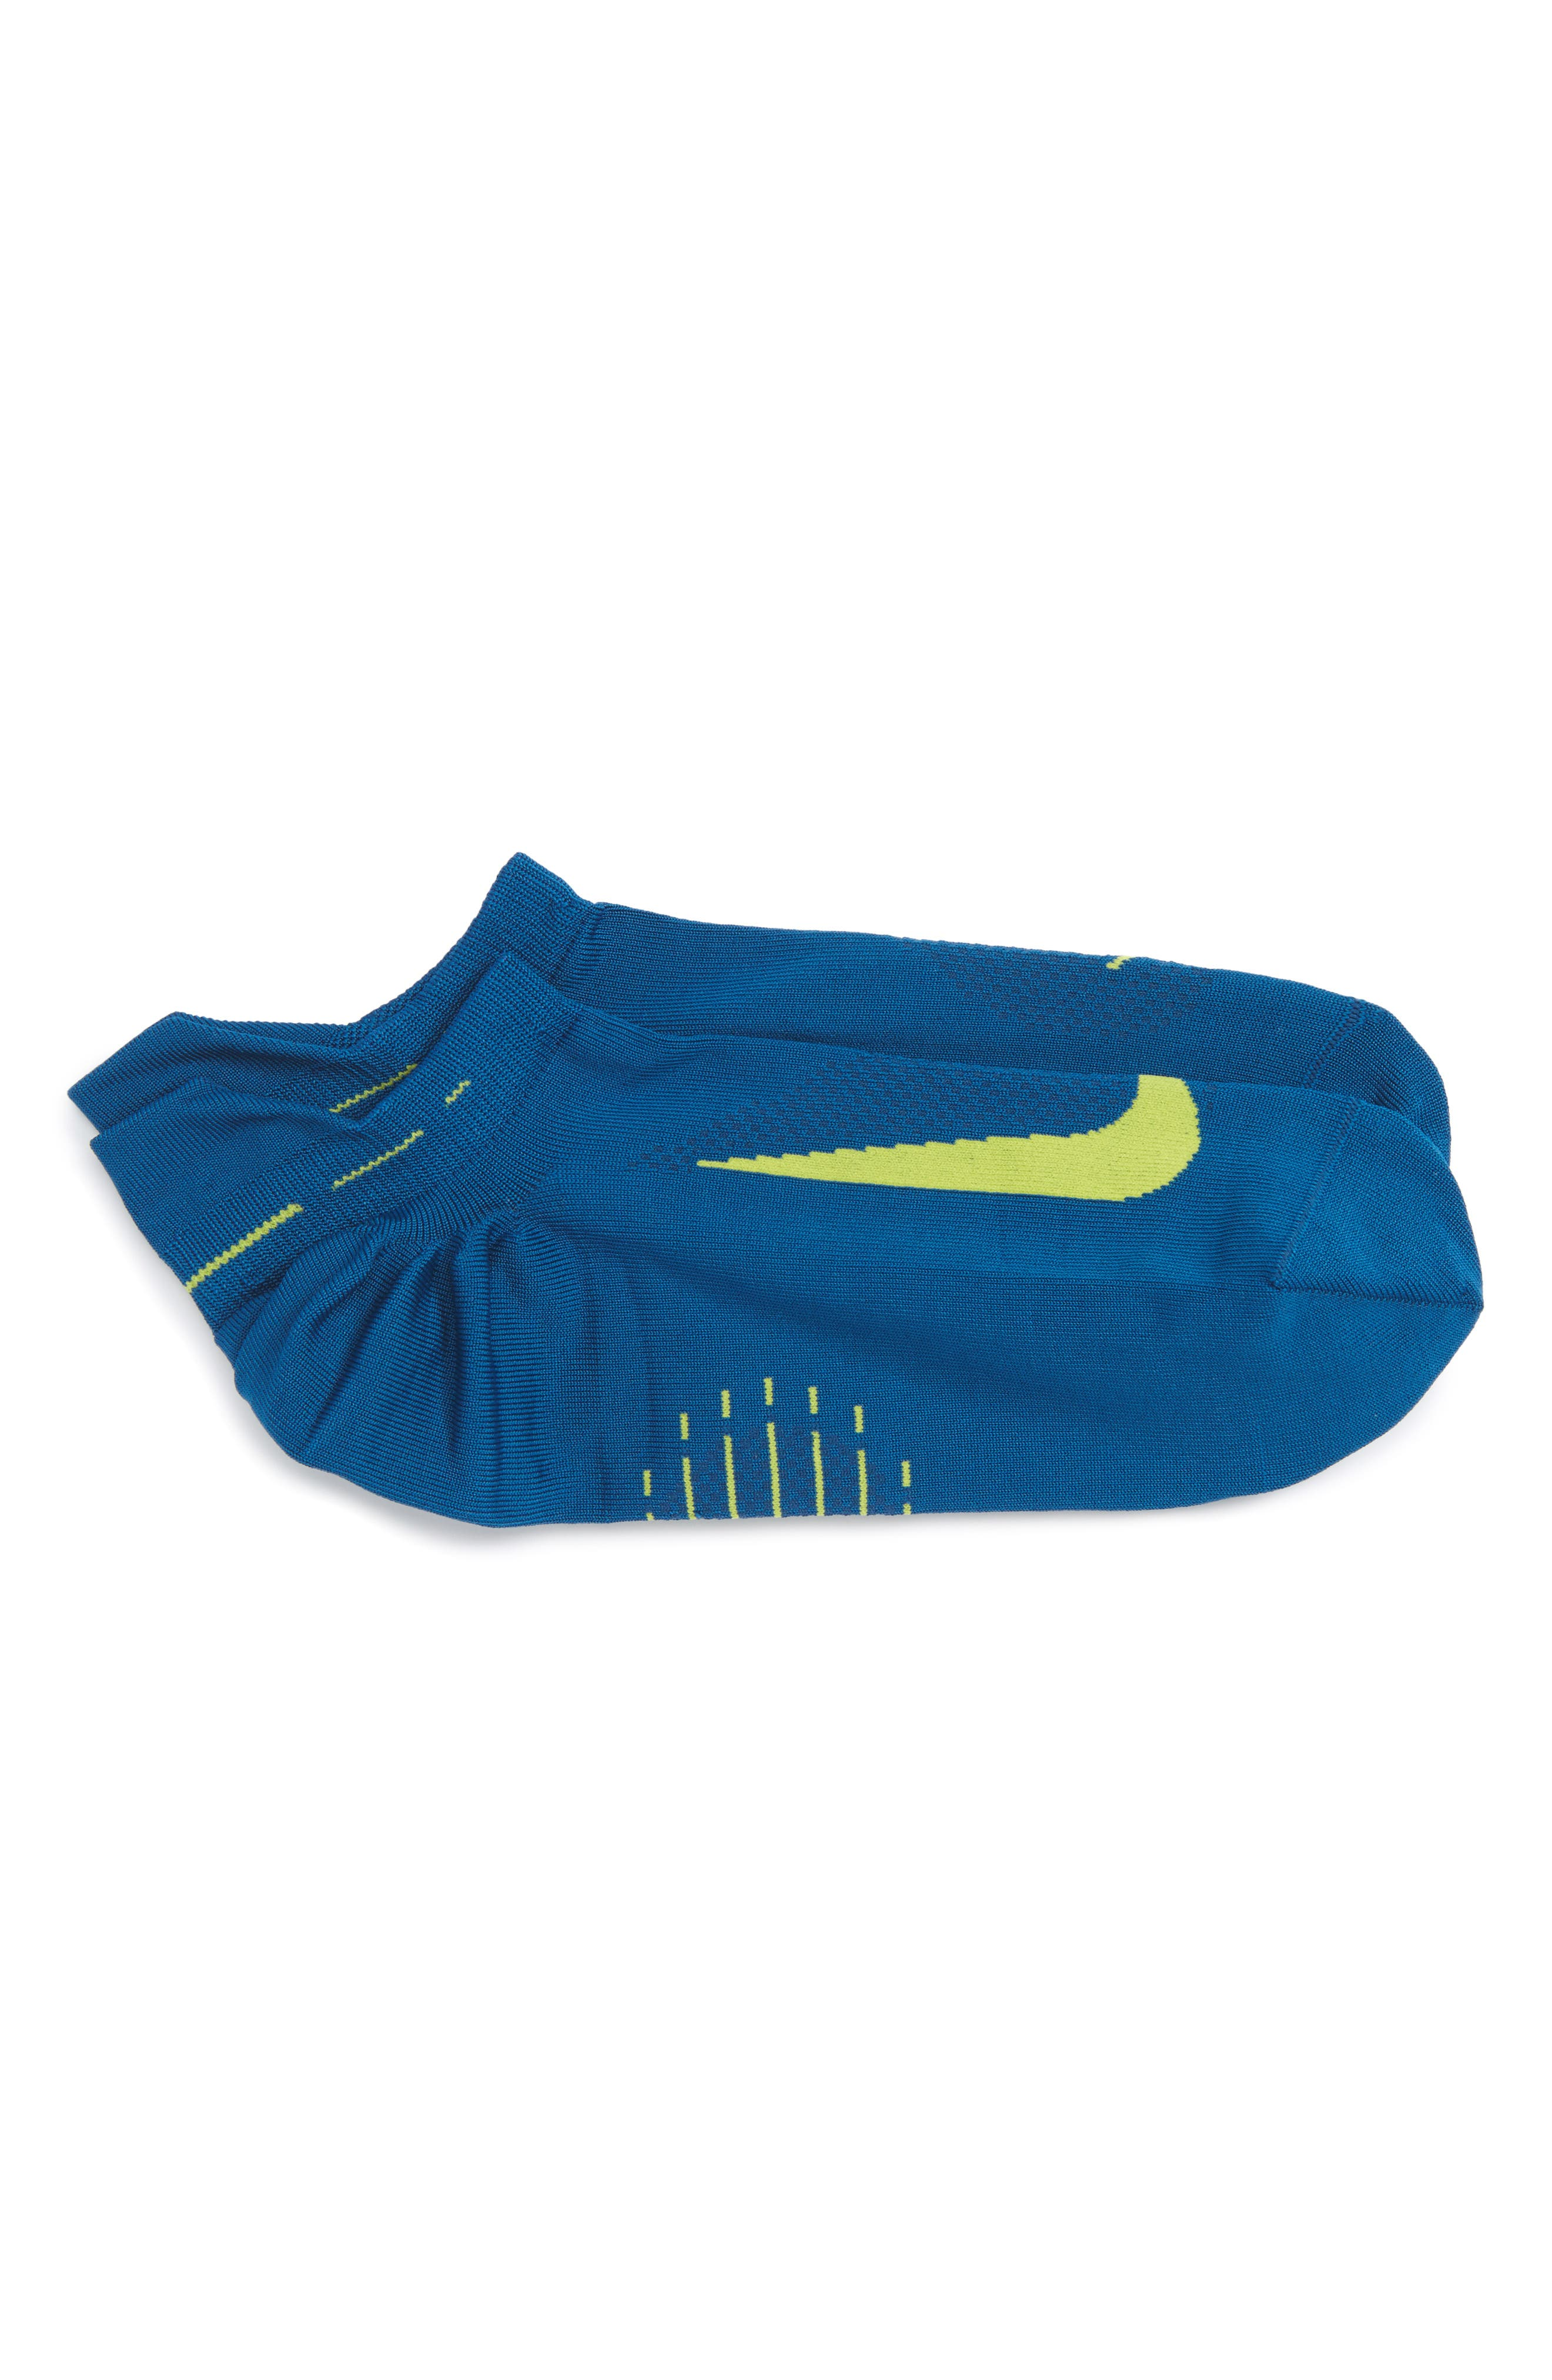 Main Image - Nike 'Elite' Lightweight No-Show Tab Running Socks